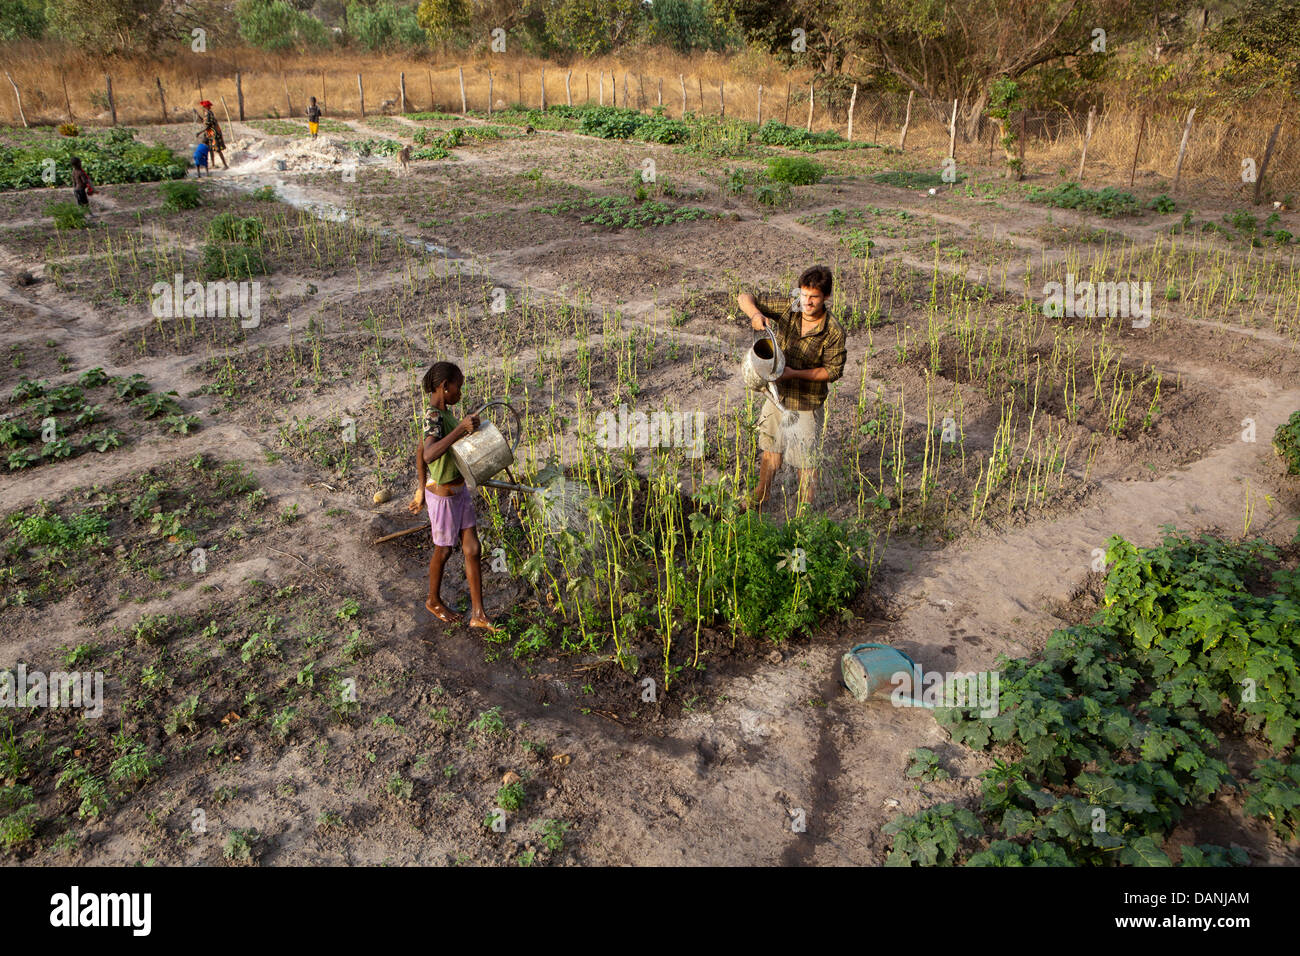 Agriculture, South Senegal. - Stock Image